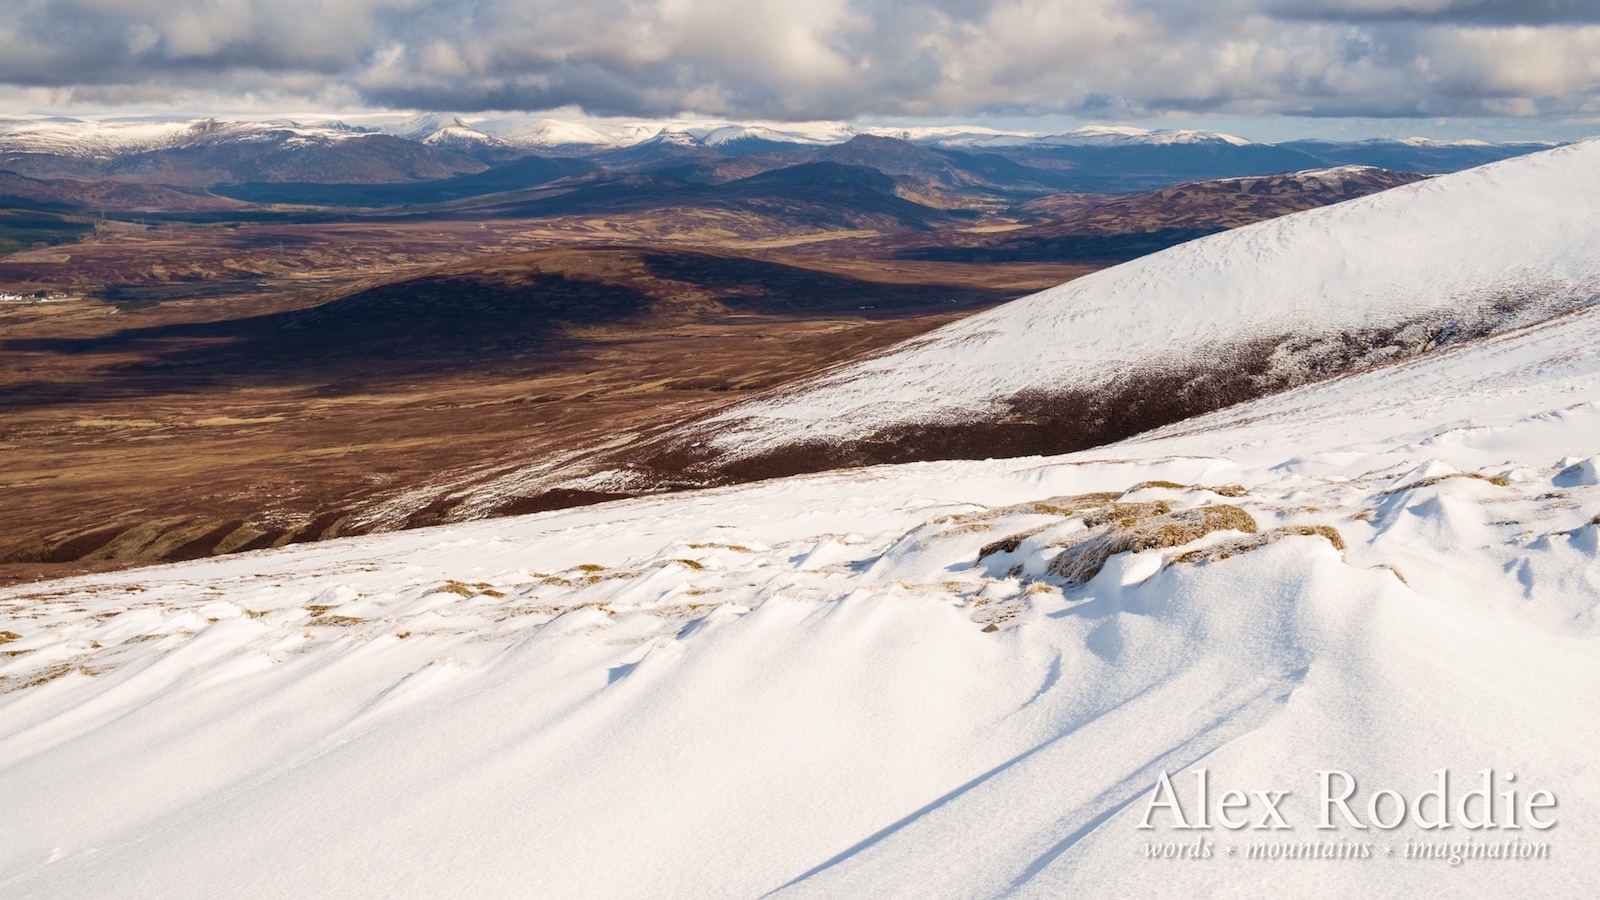 The ascent of Carn na Caim